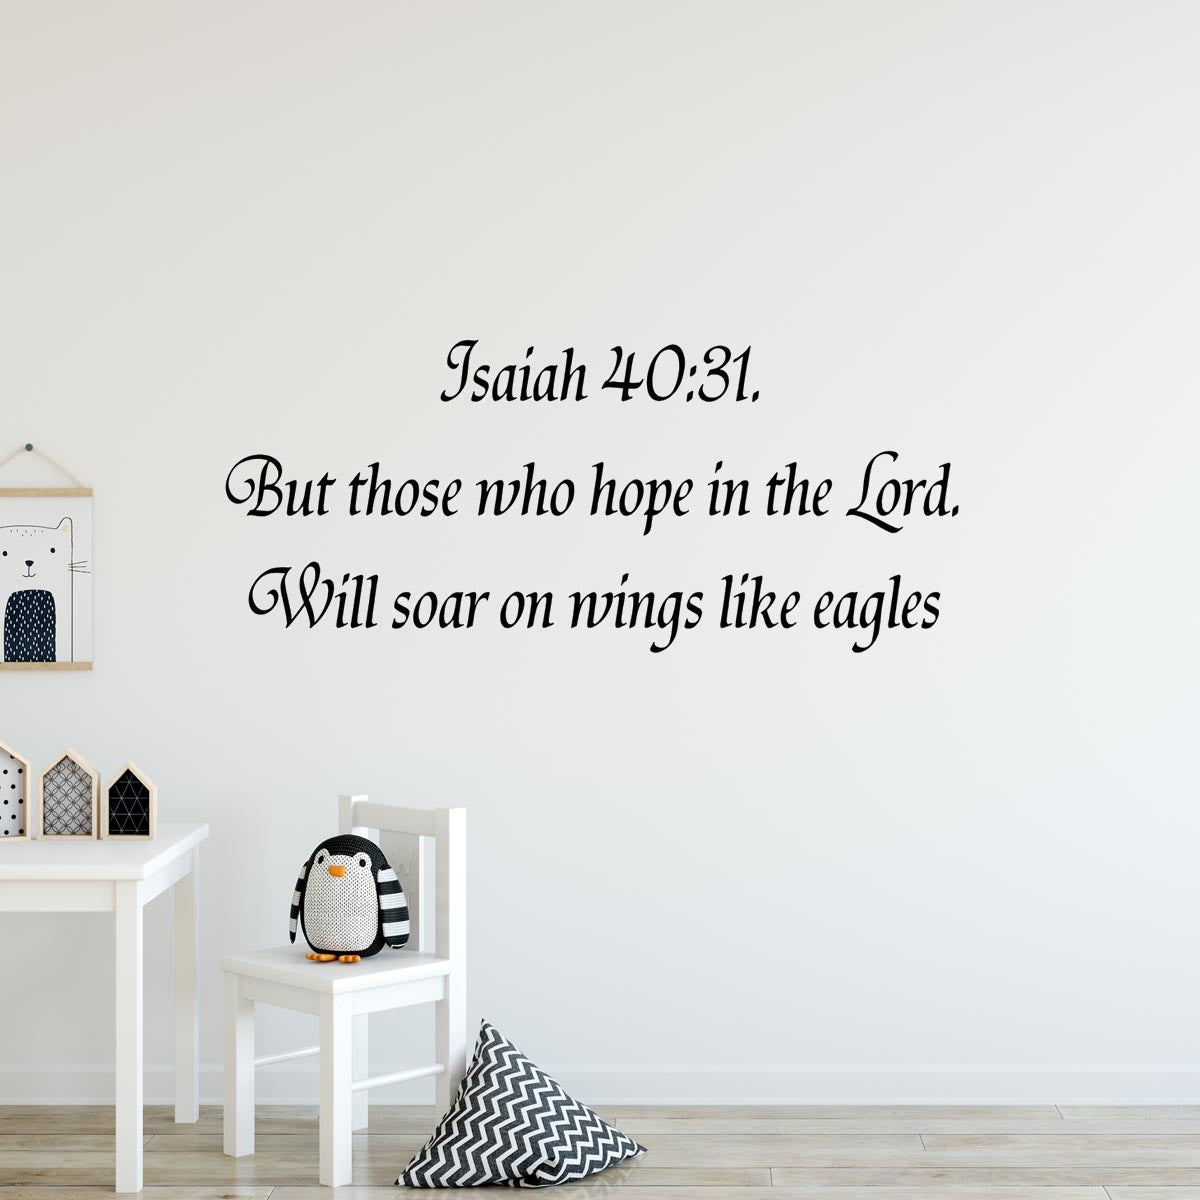 VWAQ Isaiah 40:31 Bible Wall Quotes Decal But Those Who Hope in the Lord - VWAQ Vinyl Wall Art Quotes and Prints